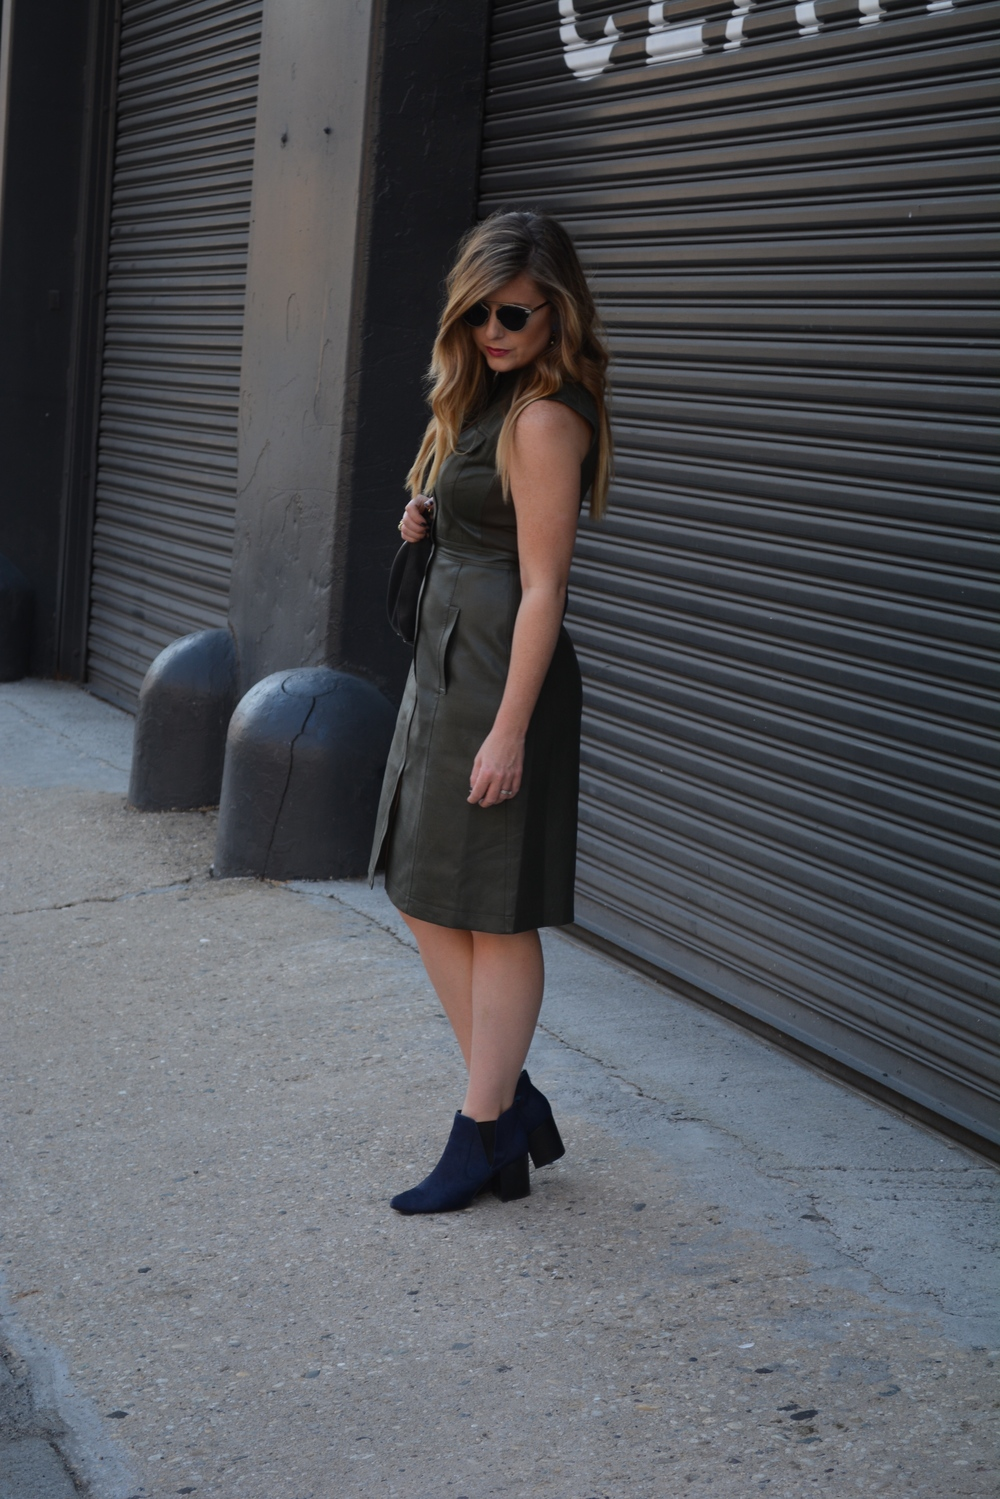 Leather BCBG dress and navy booties on Sophisticaited